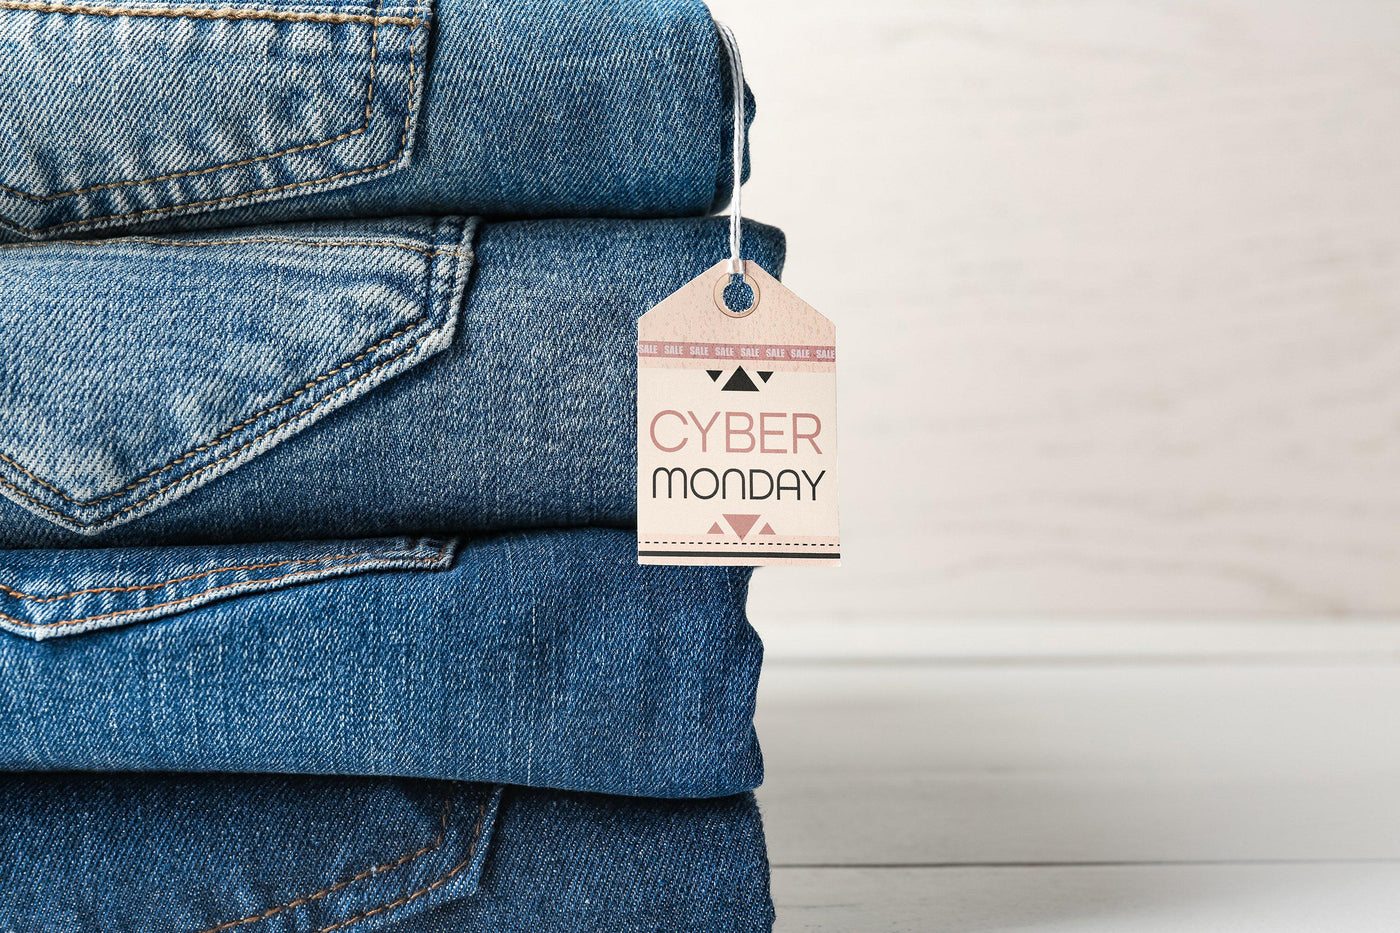 Cyber Monday - best shopping opportunity | Jeans4you.shop